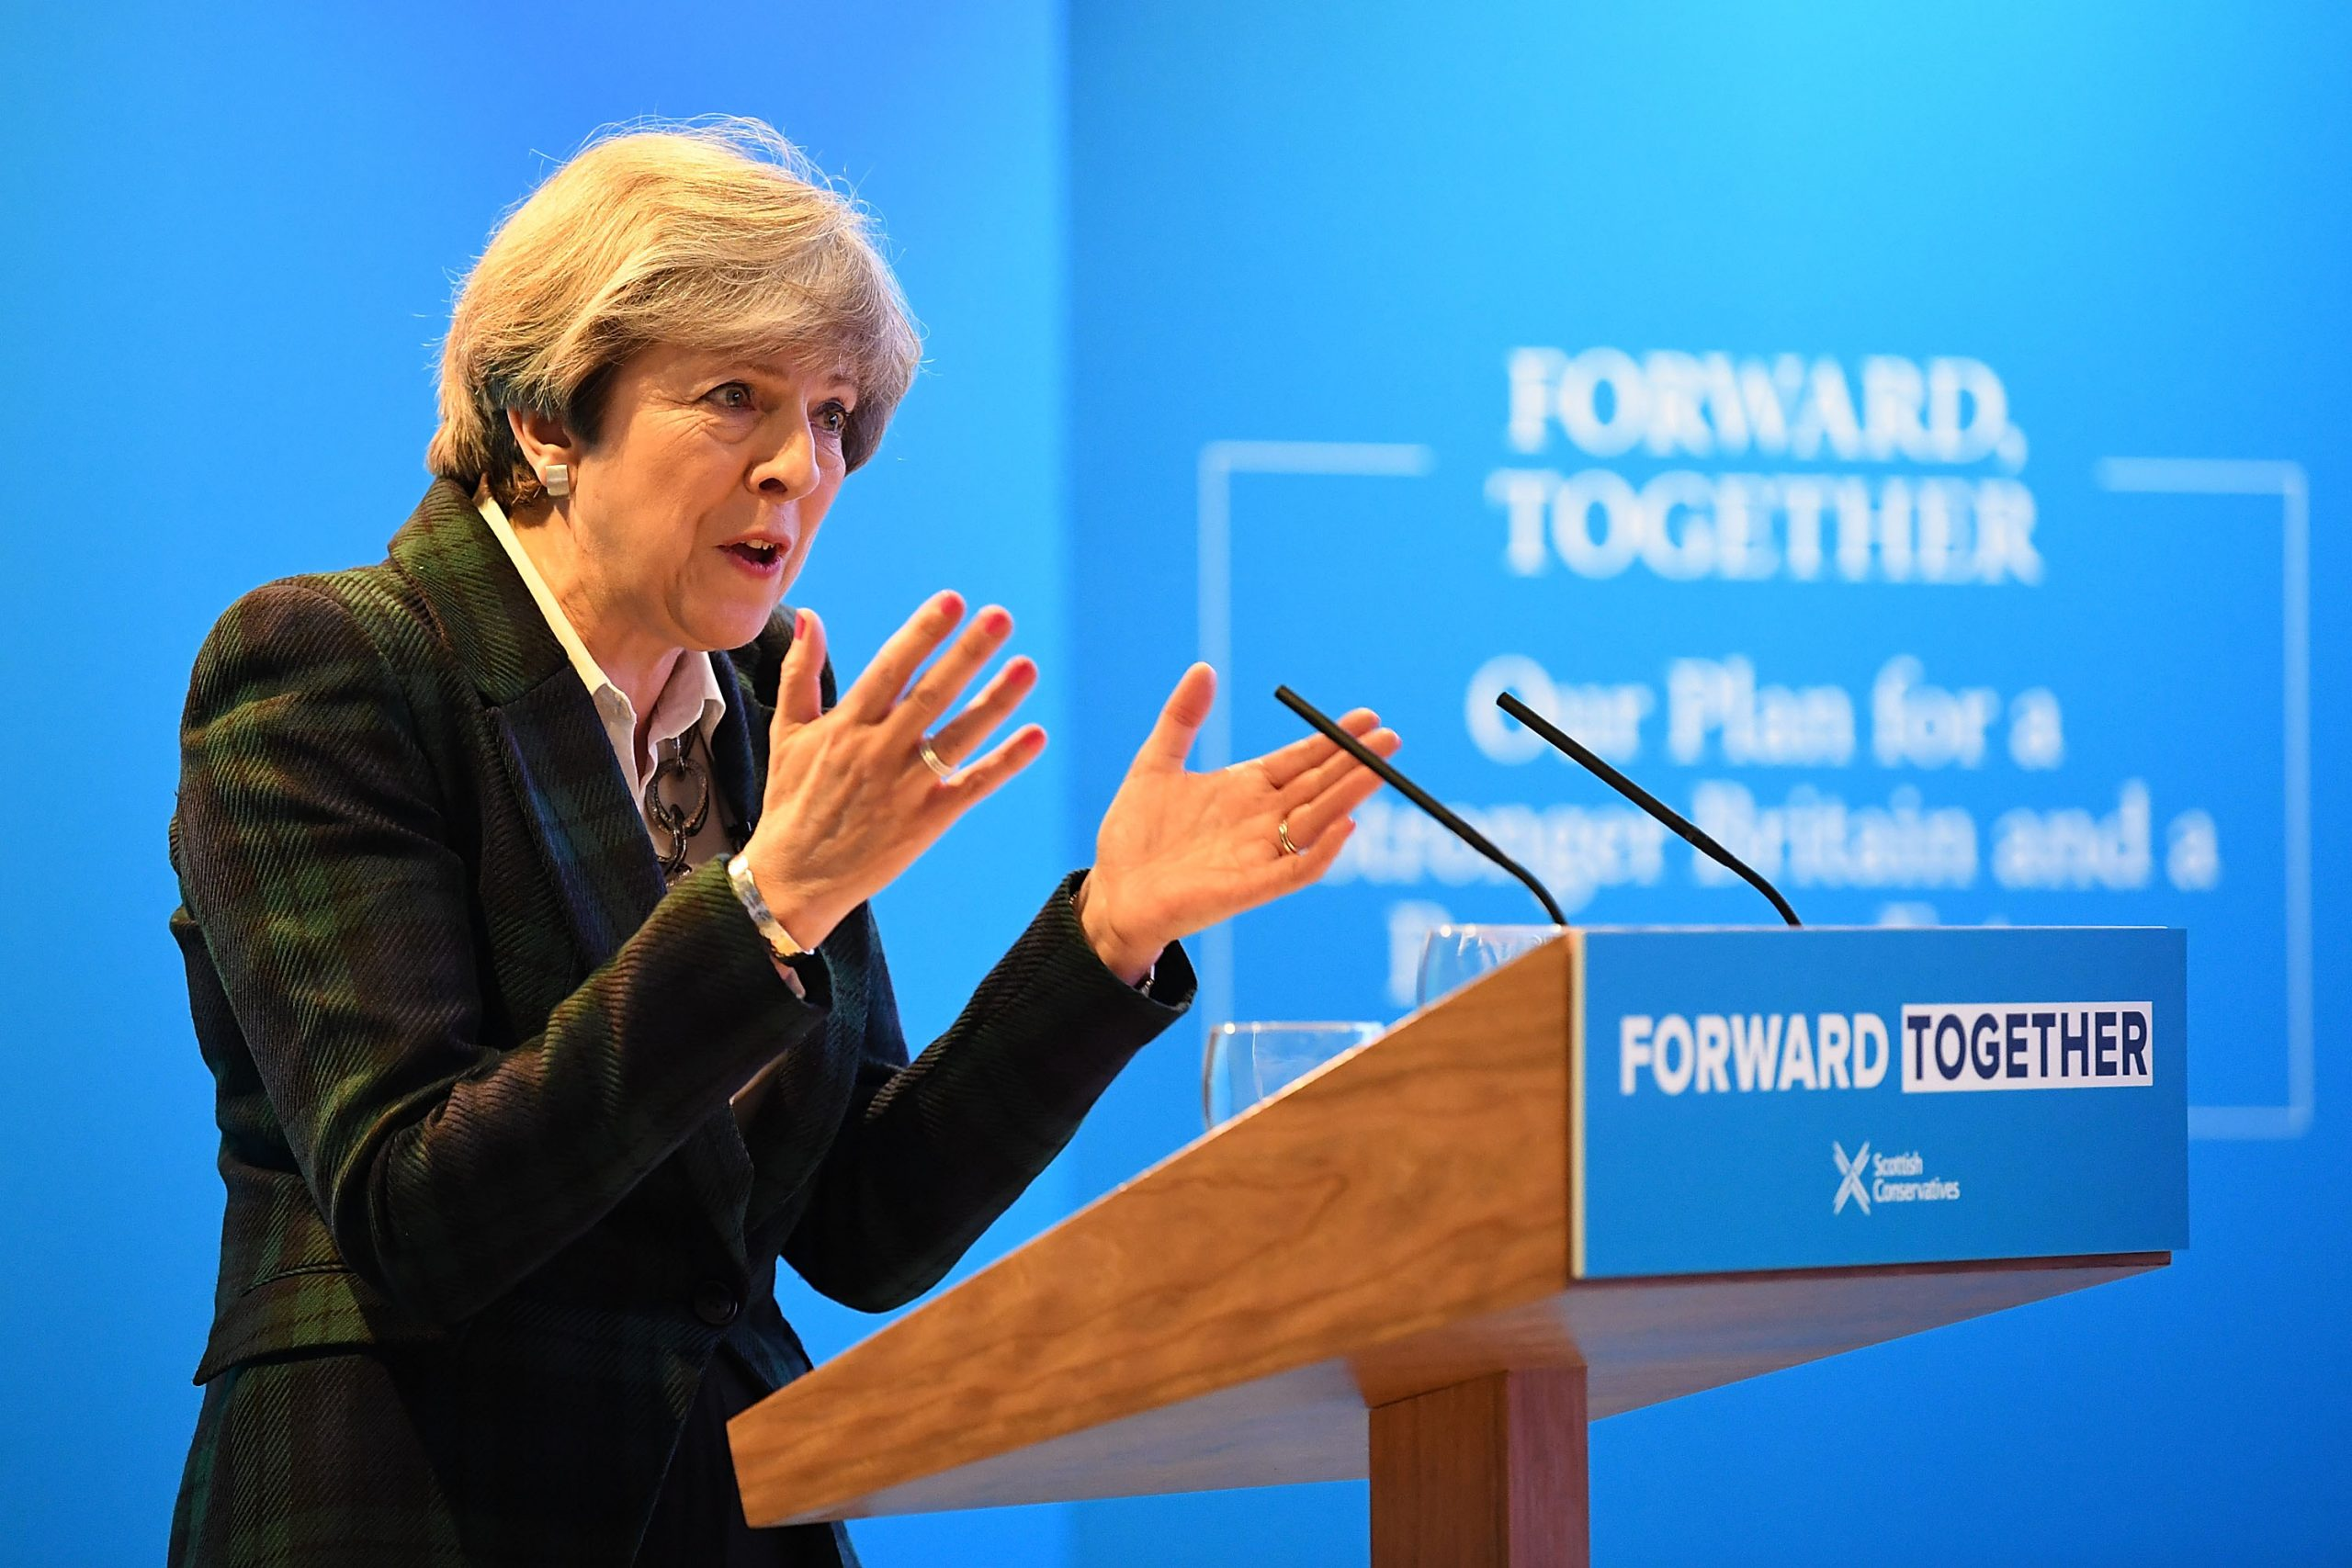 EDINBURGH, SCOTLAND - MAY 19:  Prime Minister Theresa May gives a speech at the launch of the Scottish manifesto in Edinburgh, Scotland. (Jeff Mitchell/Getty Images)